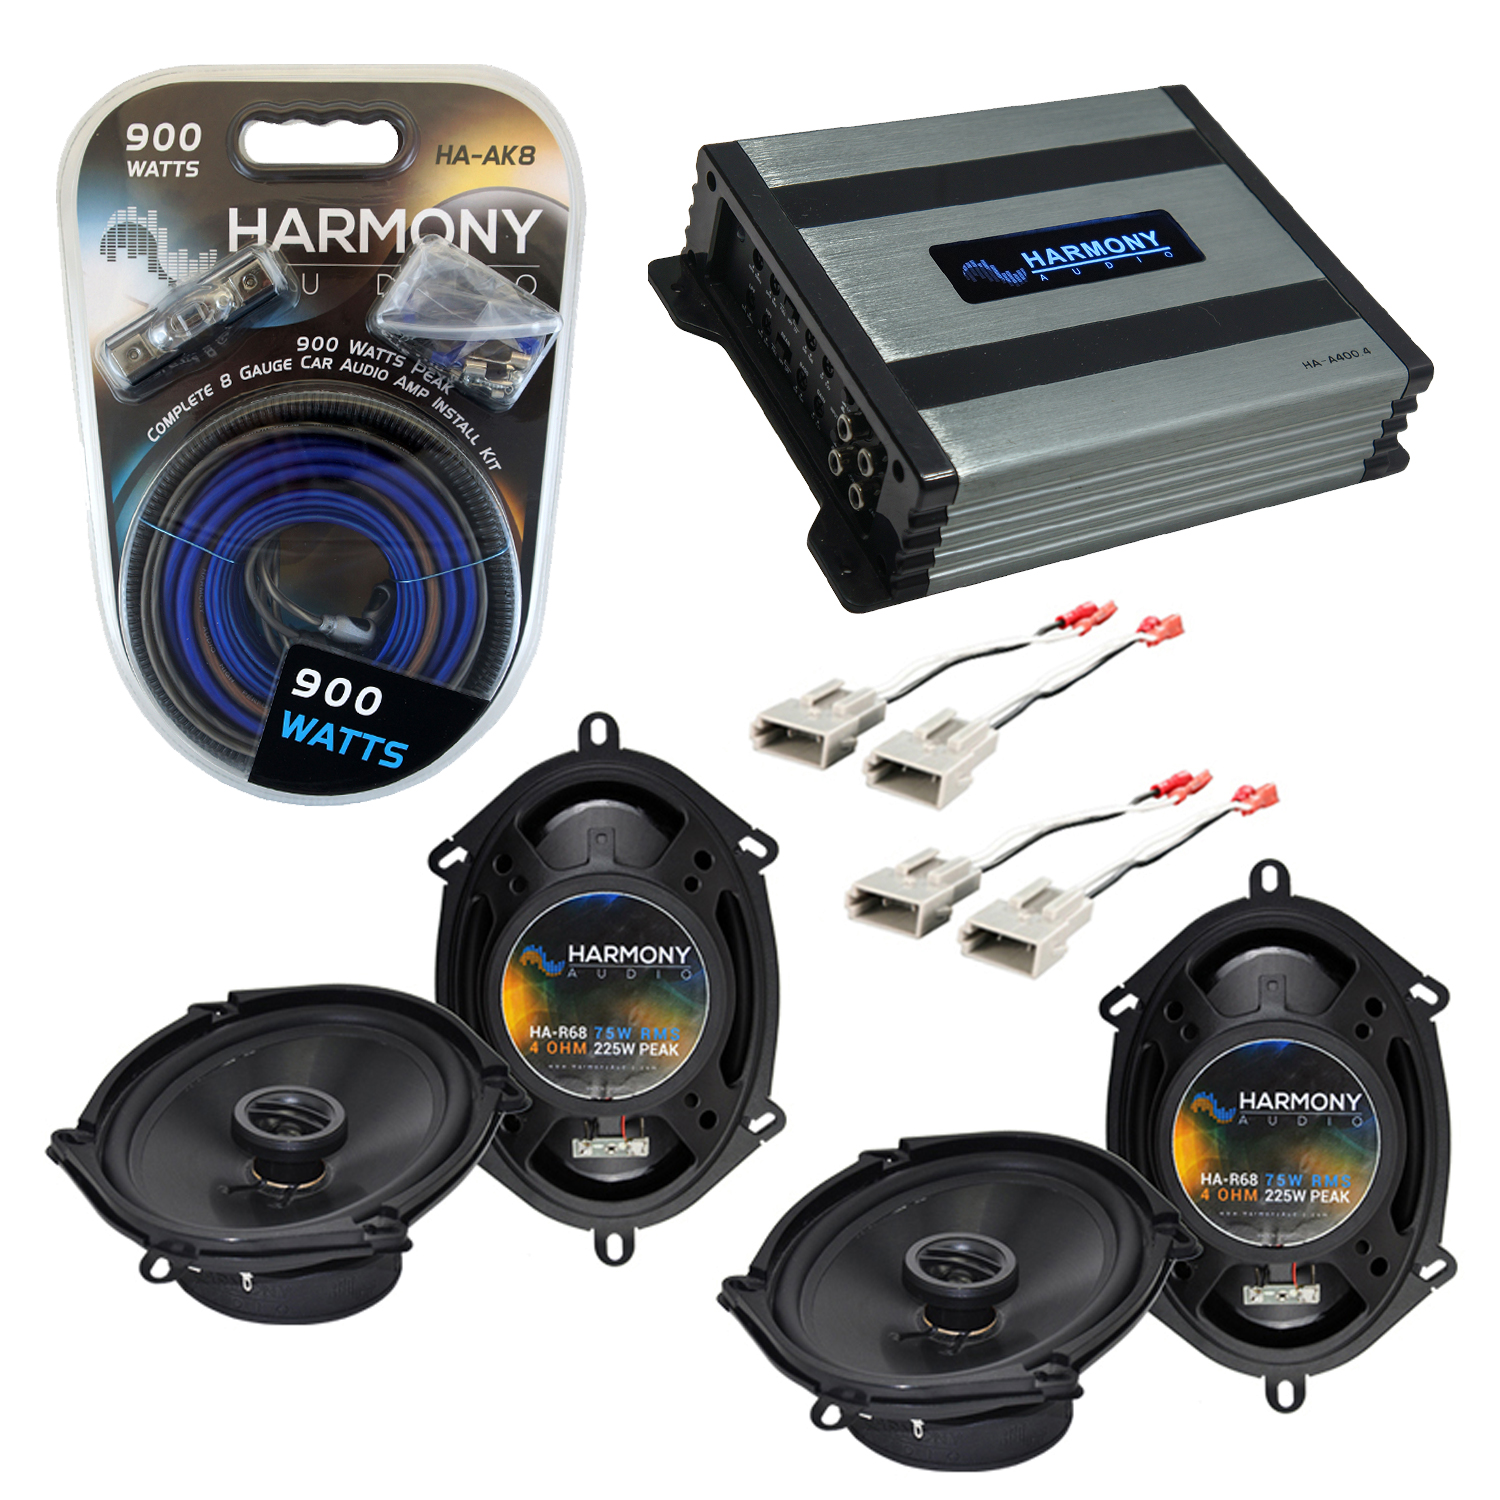 Compatible with Ford Mustang 1999-2004 Factory Speaker Replacement Harmony (2) R68 & Harmony HA-A400.4 Amp